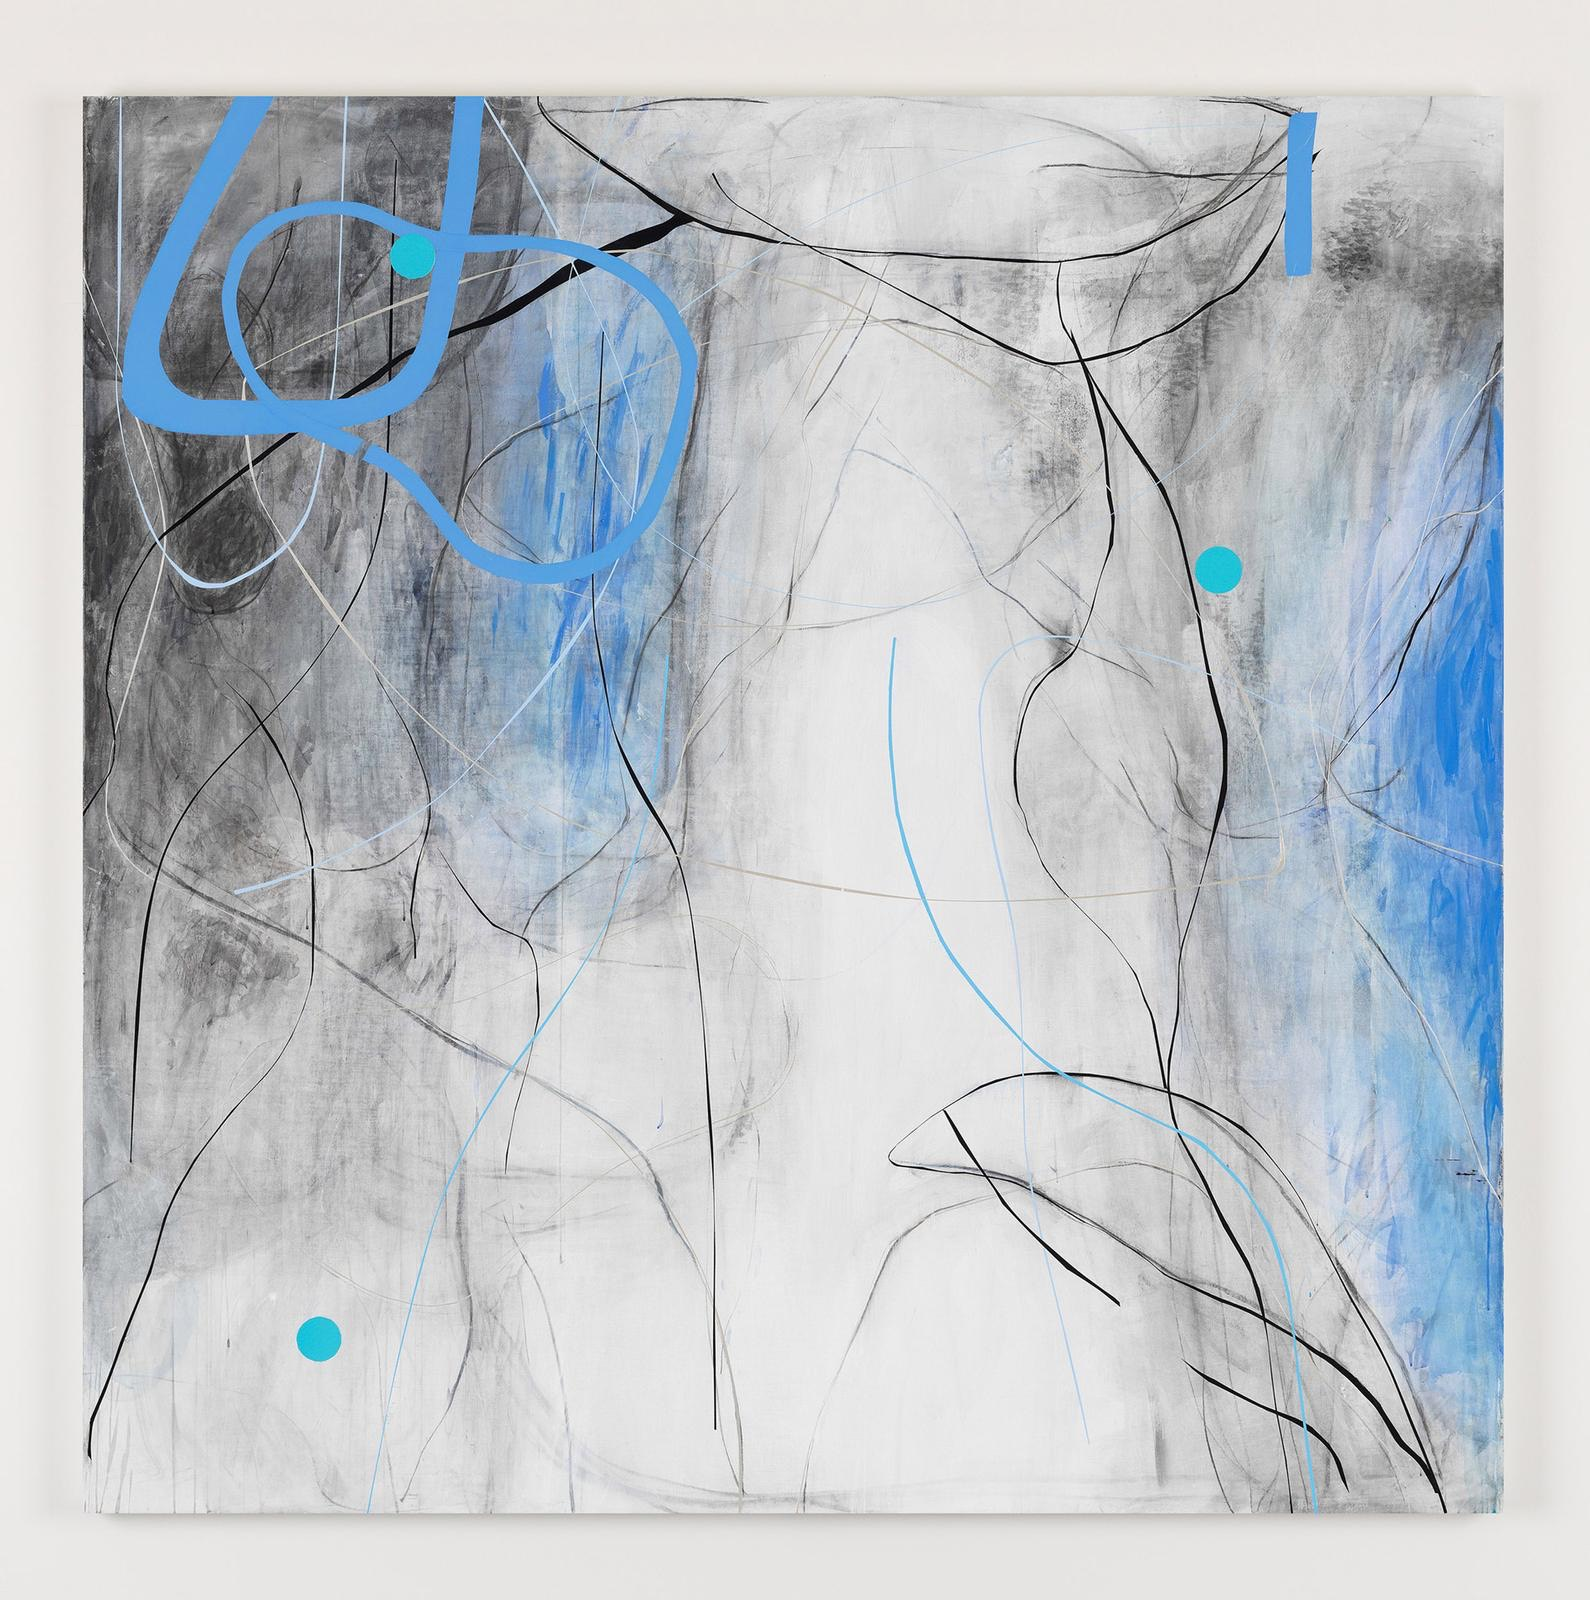 Zhou Li, Blue – No.2, 2018, mixed media on canvas